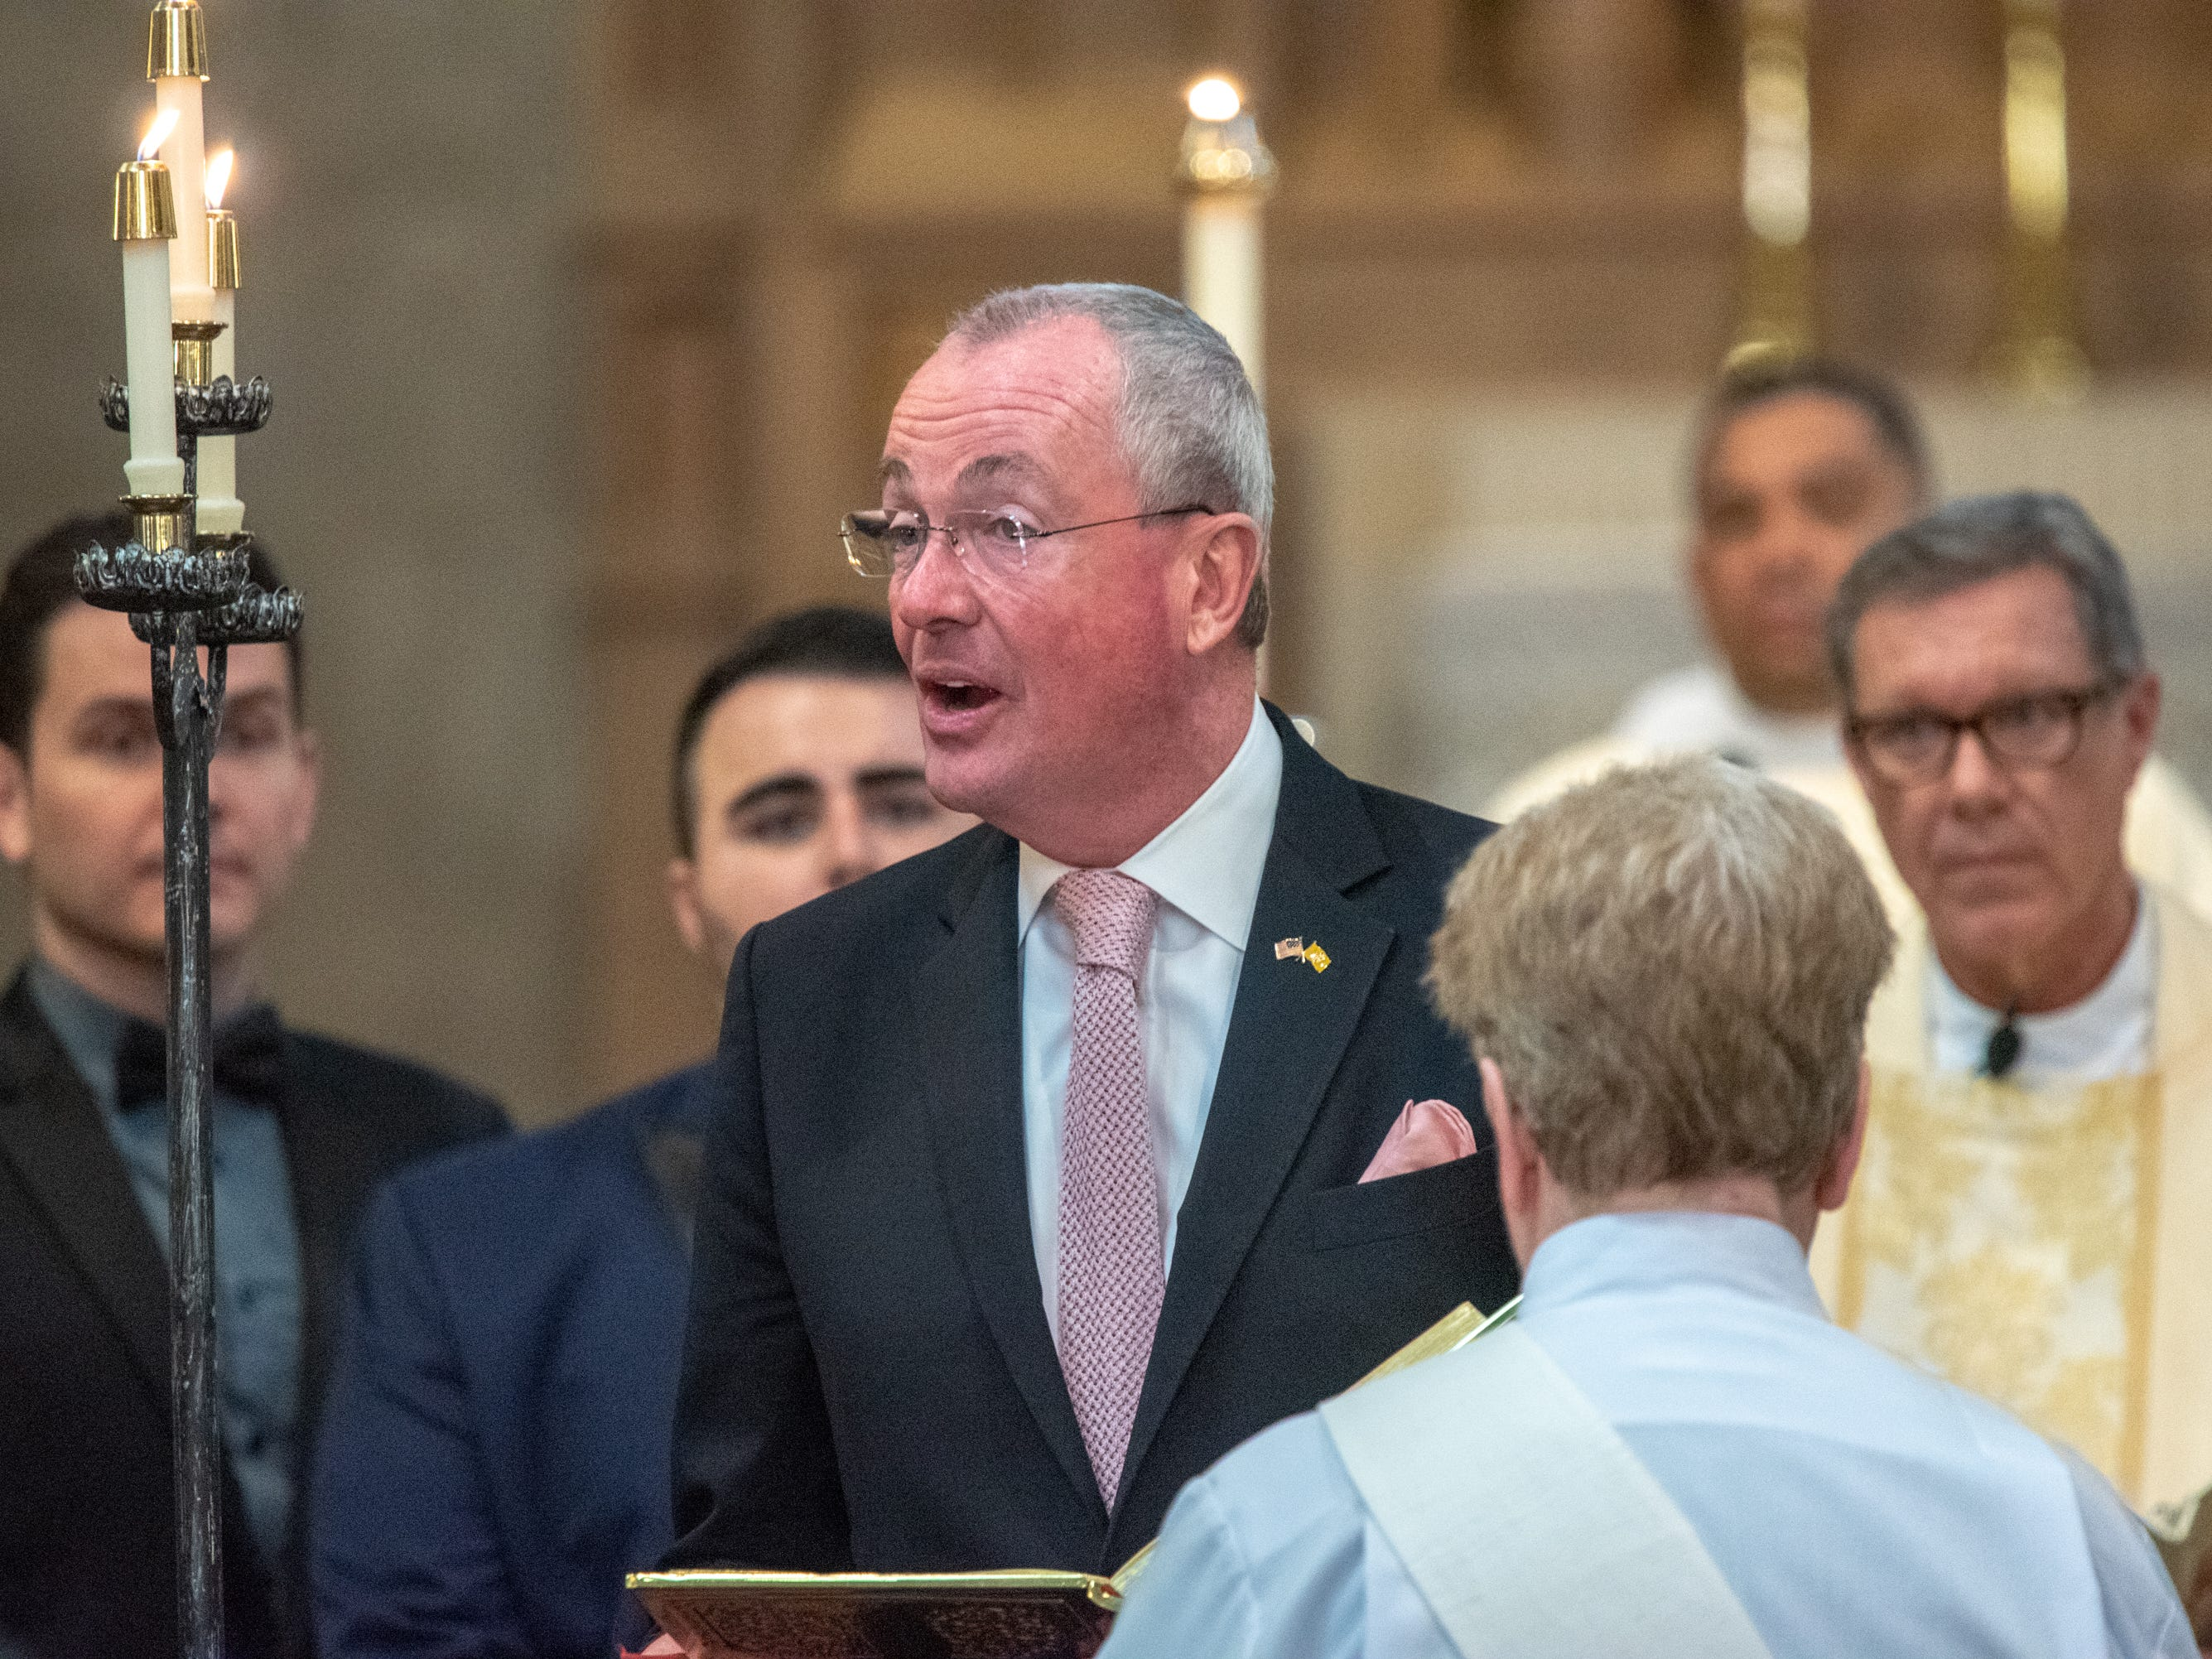 Gov. Phil Murphy read at the ceremony. Christian Fuscarino, (visible on the left shoulder of governor) Executive Director of Garden State Equality, and U.S. Marine Corporal Aaron Williams (at right) were married at Trinity Church in Asbury Park on Sunday, November 11, 2018.  / Russ DeSantis f